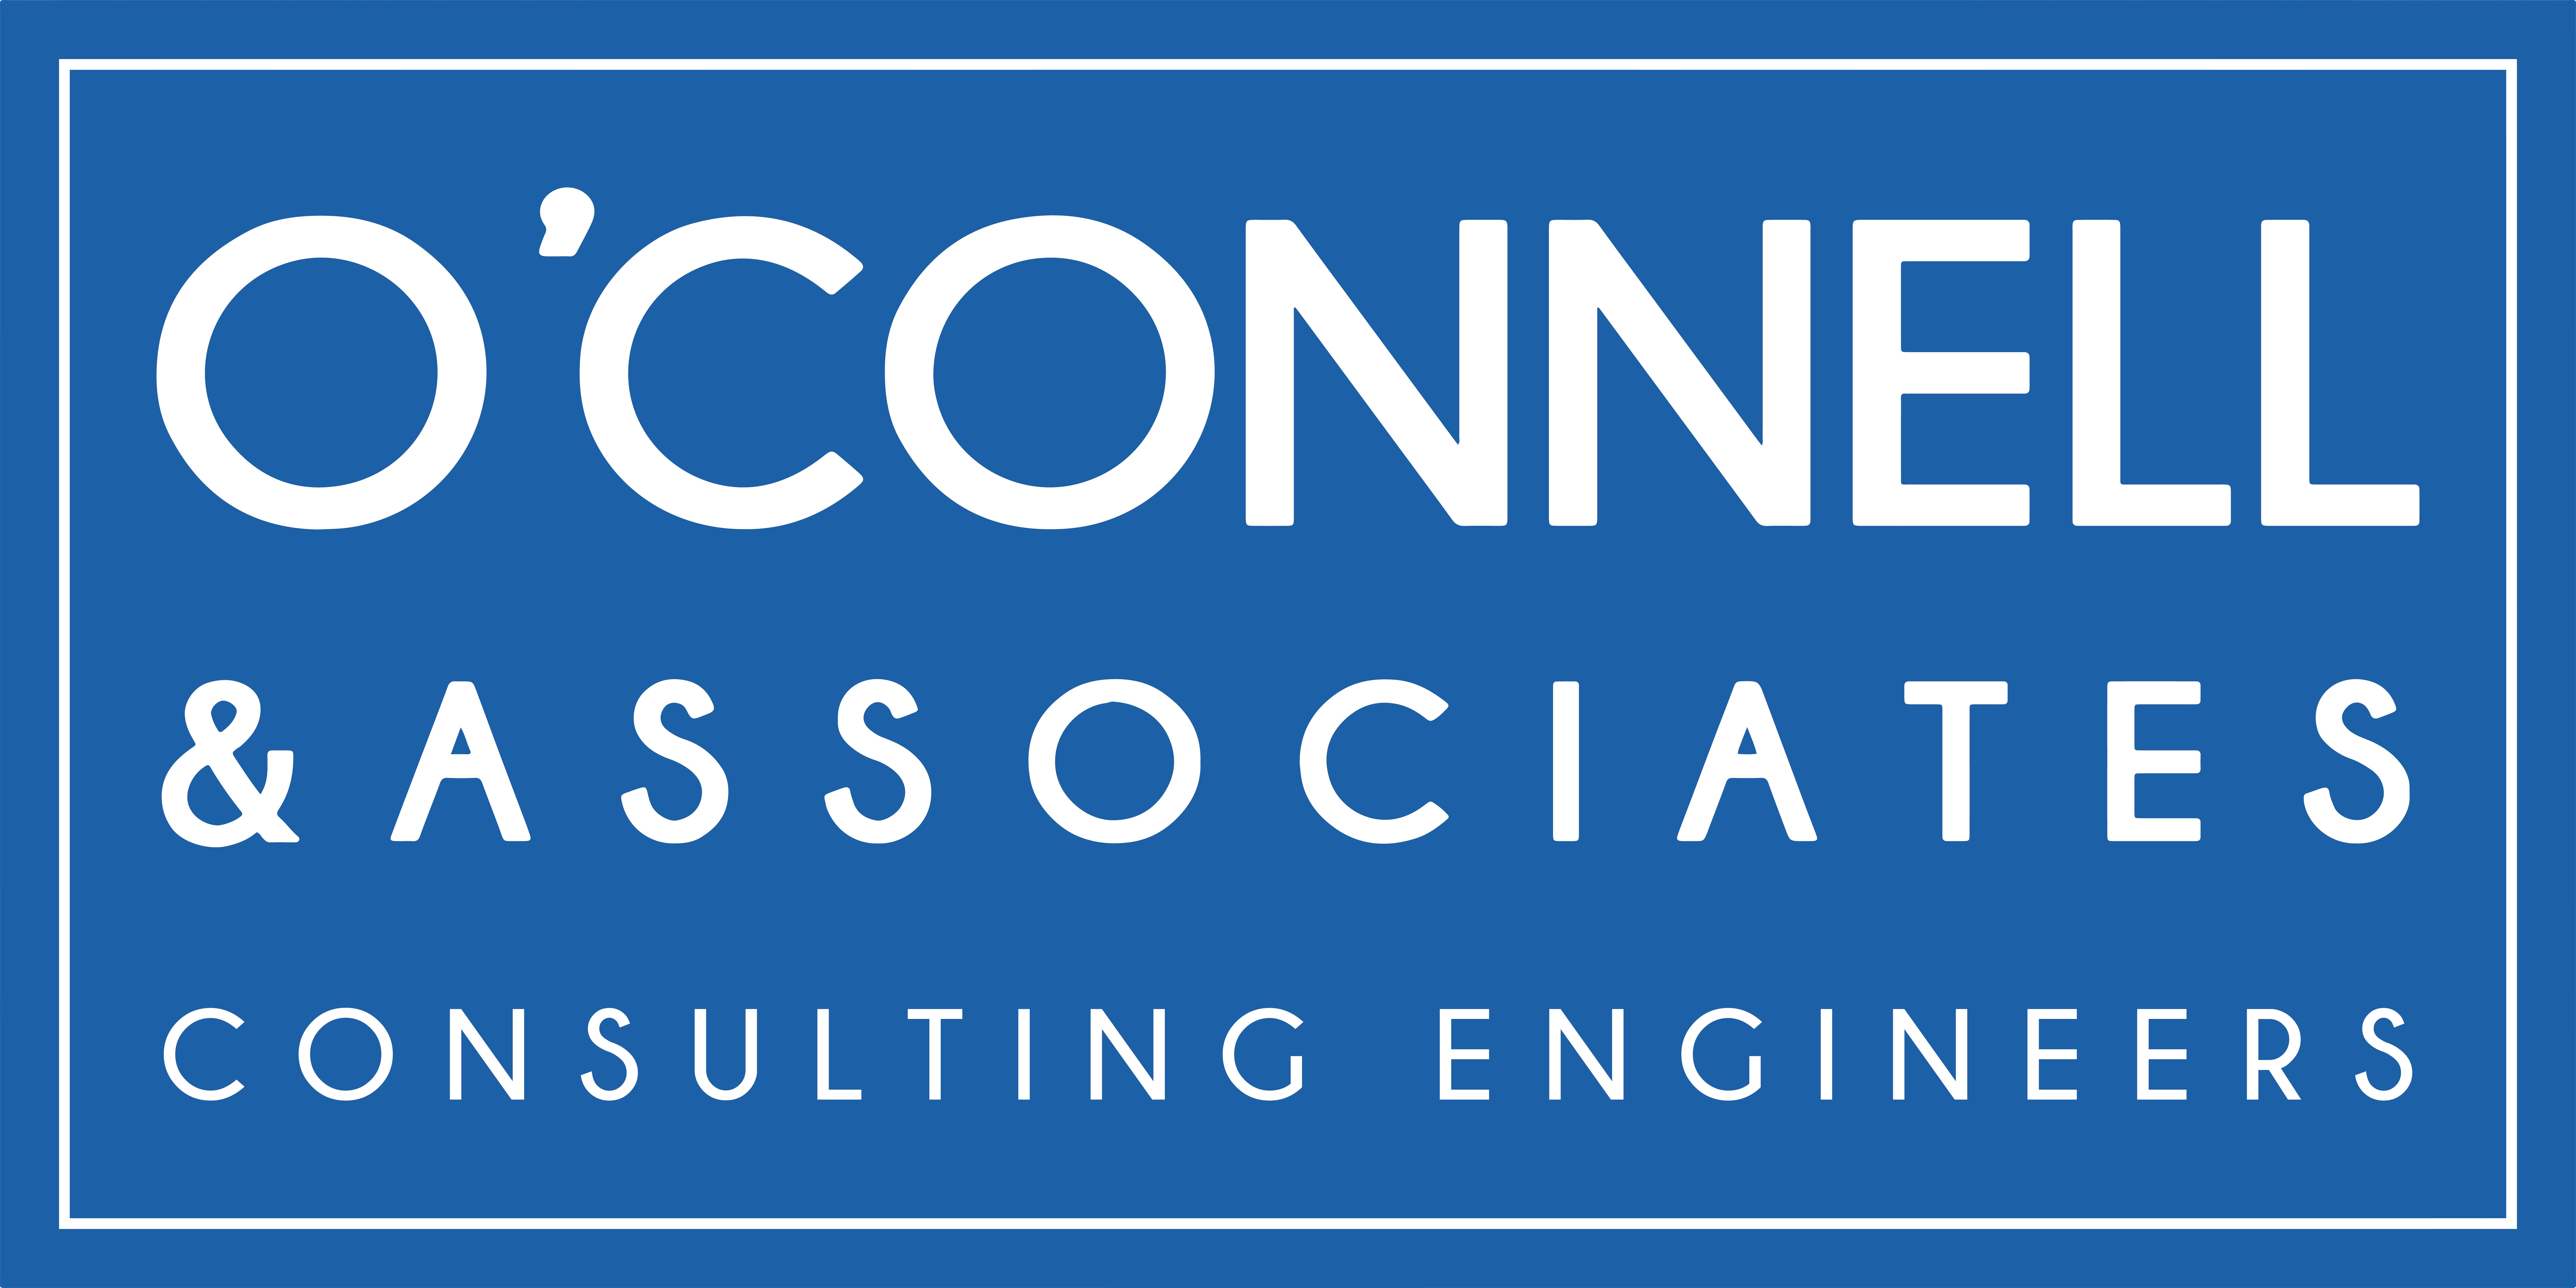 O'Connell & Associates Consulting Engineers